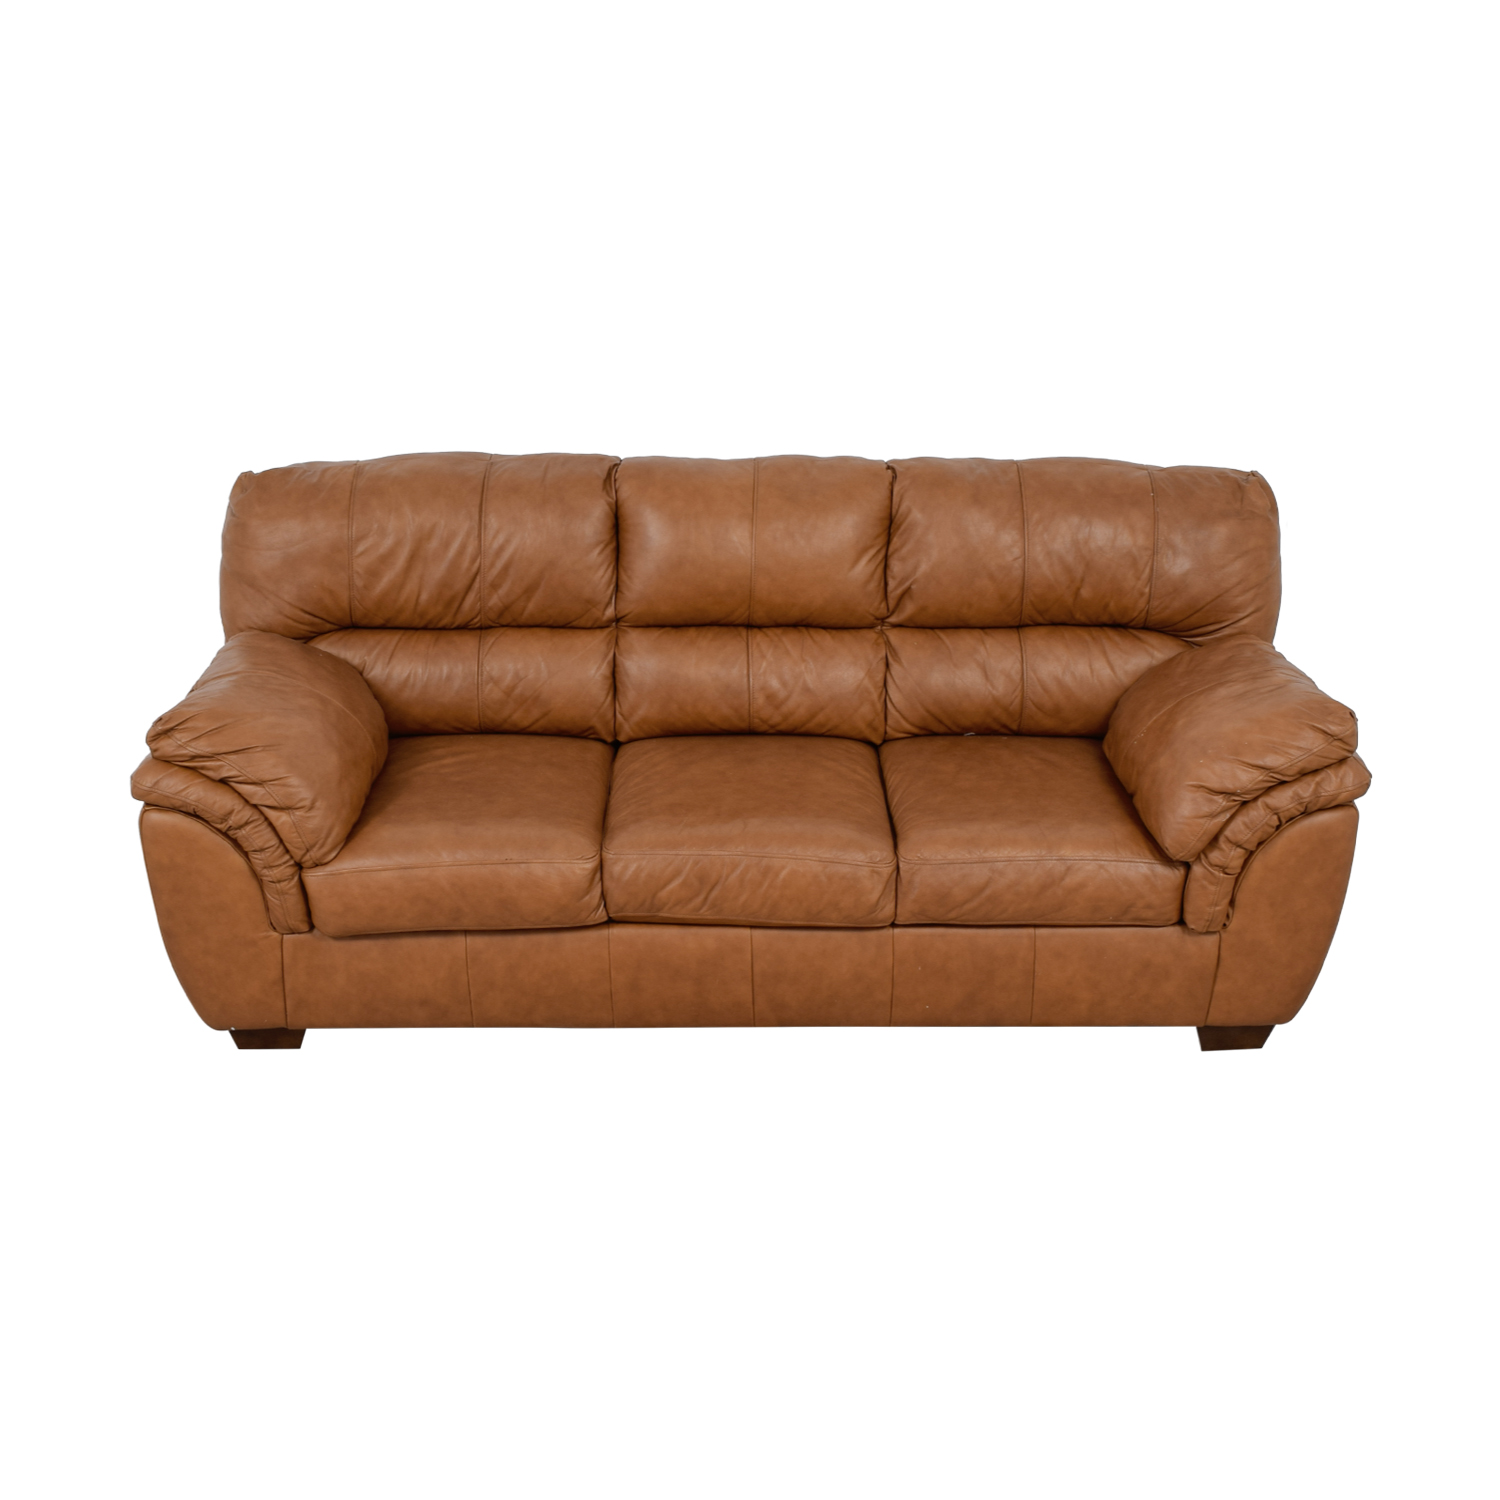 Ashley Furniture Bladen Cognac Leather Three-Cushion Sofa Ashley Furniture